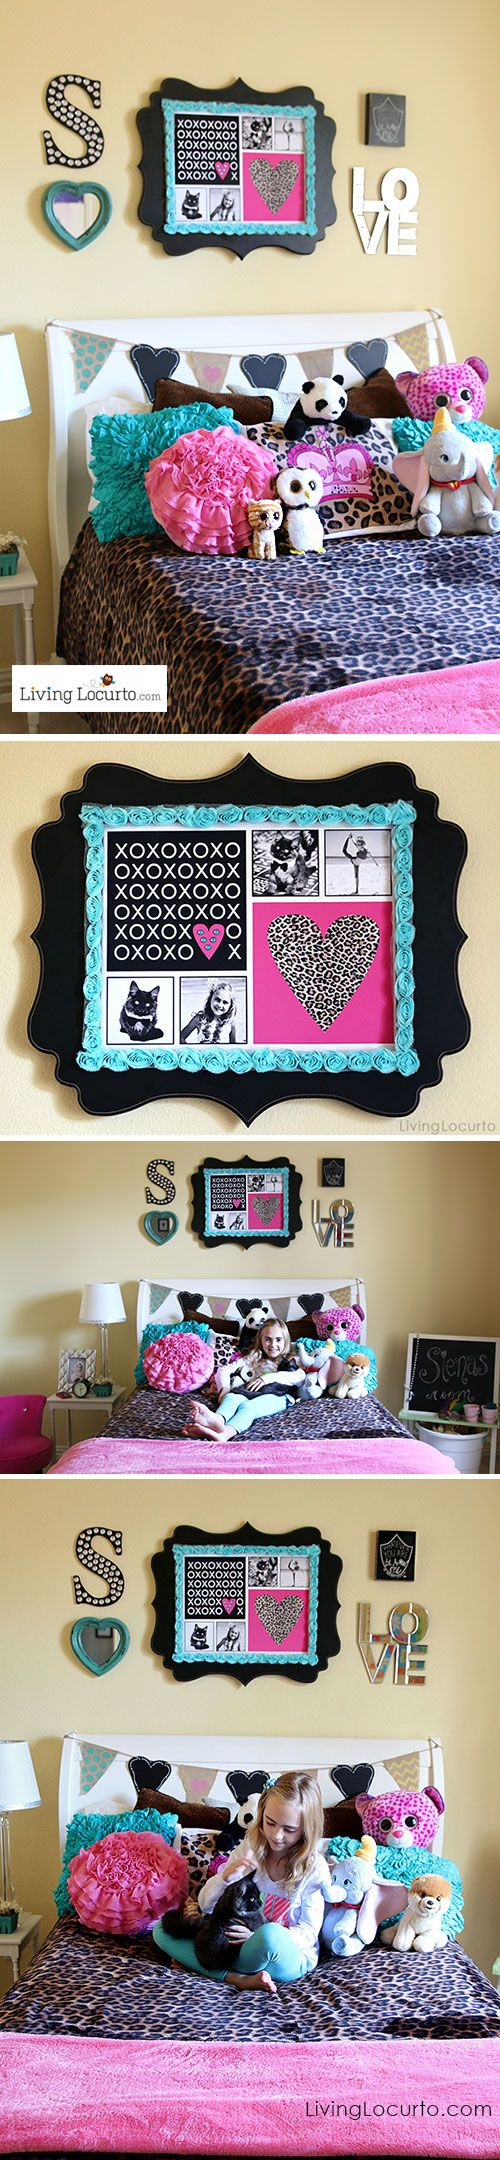 177 best DIY Kids Bedrooms images on Pinterest | Kid bedrooms, Kid ...